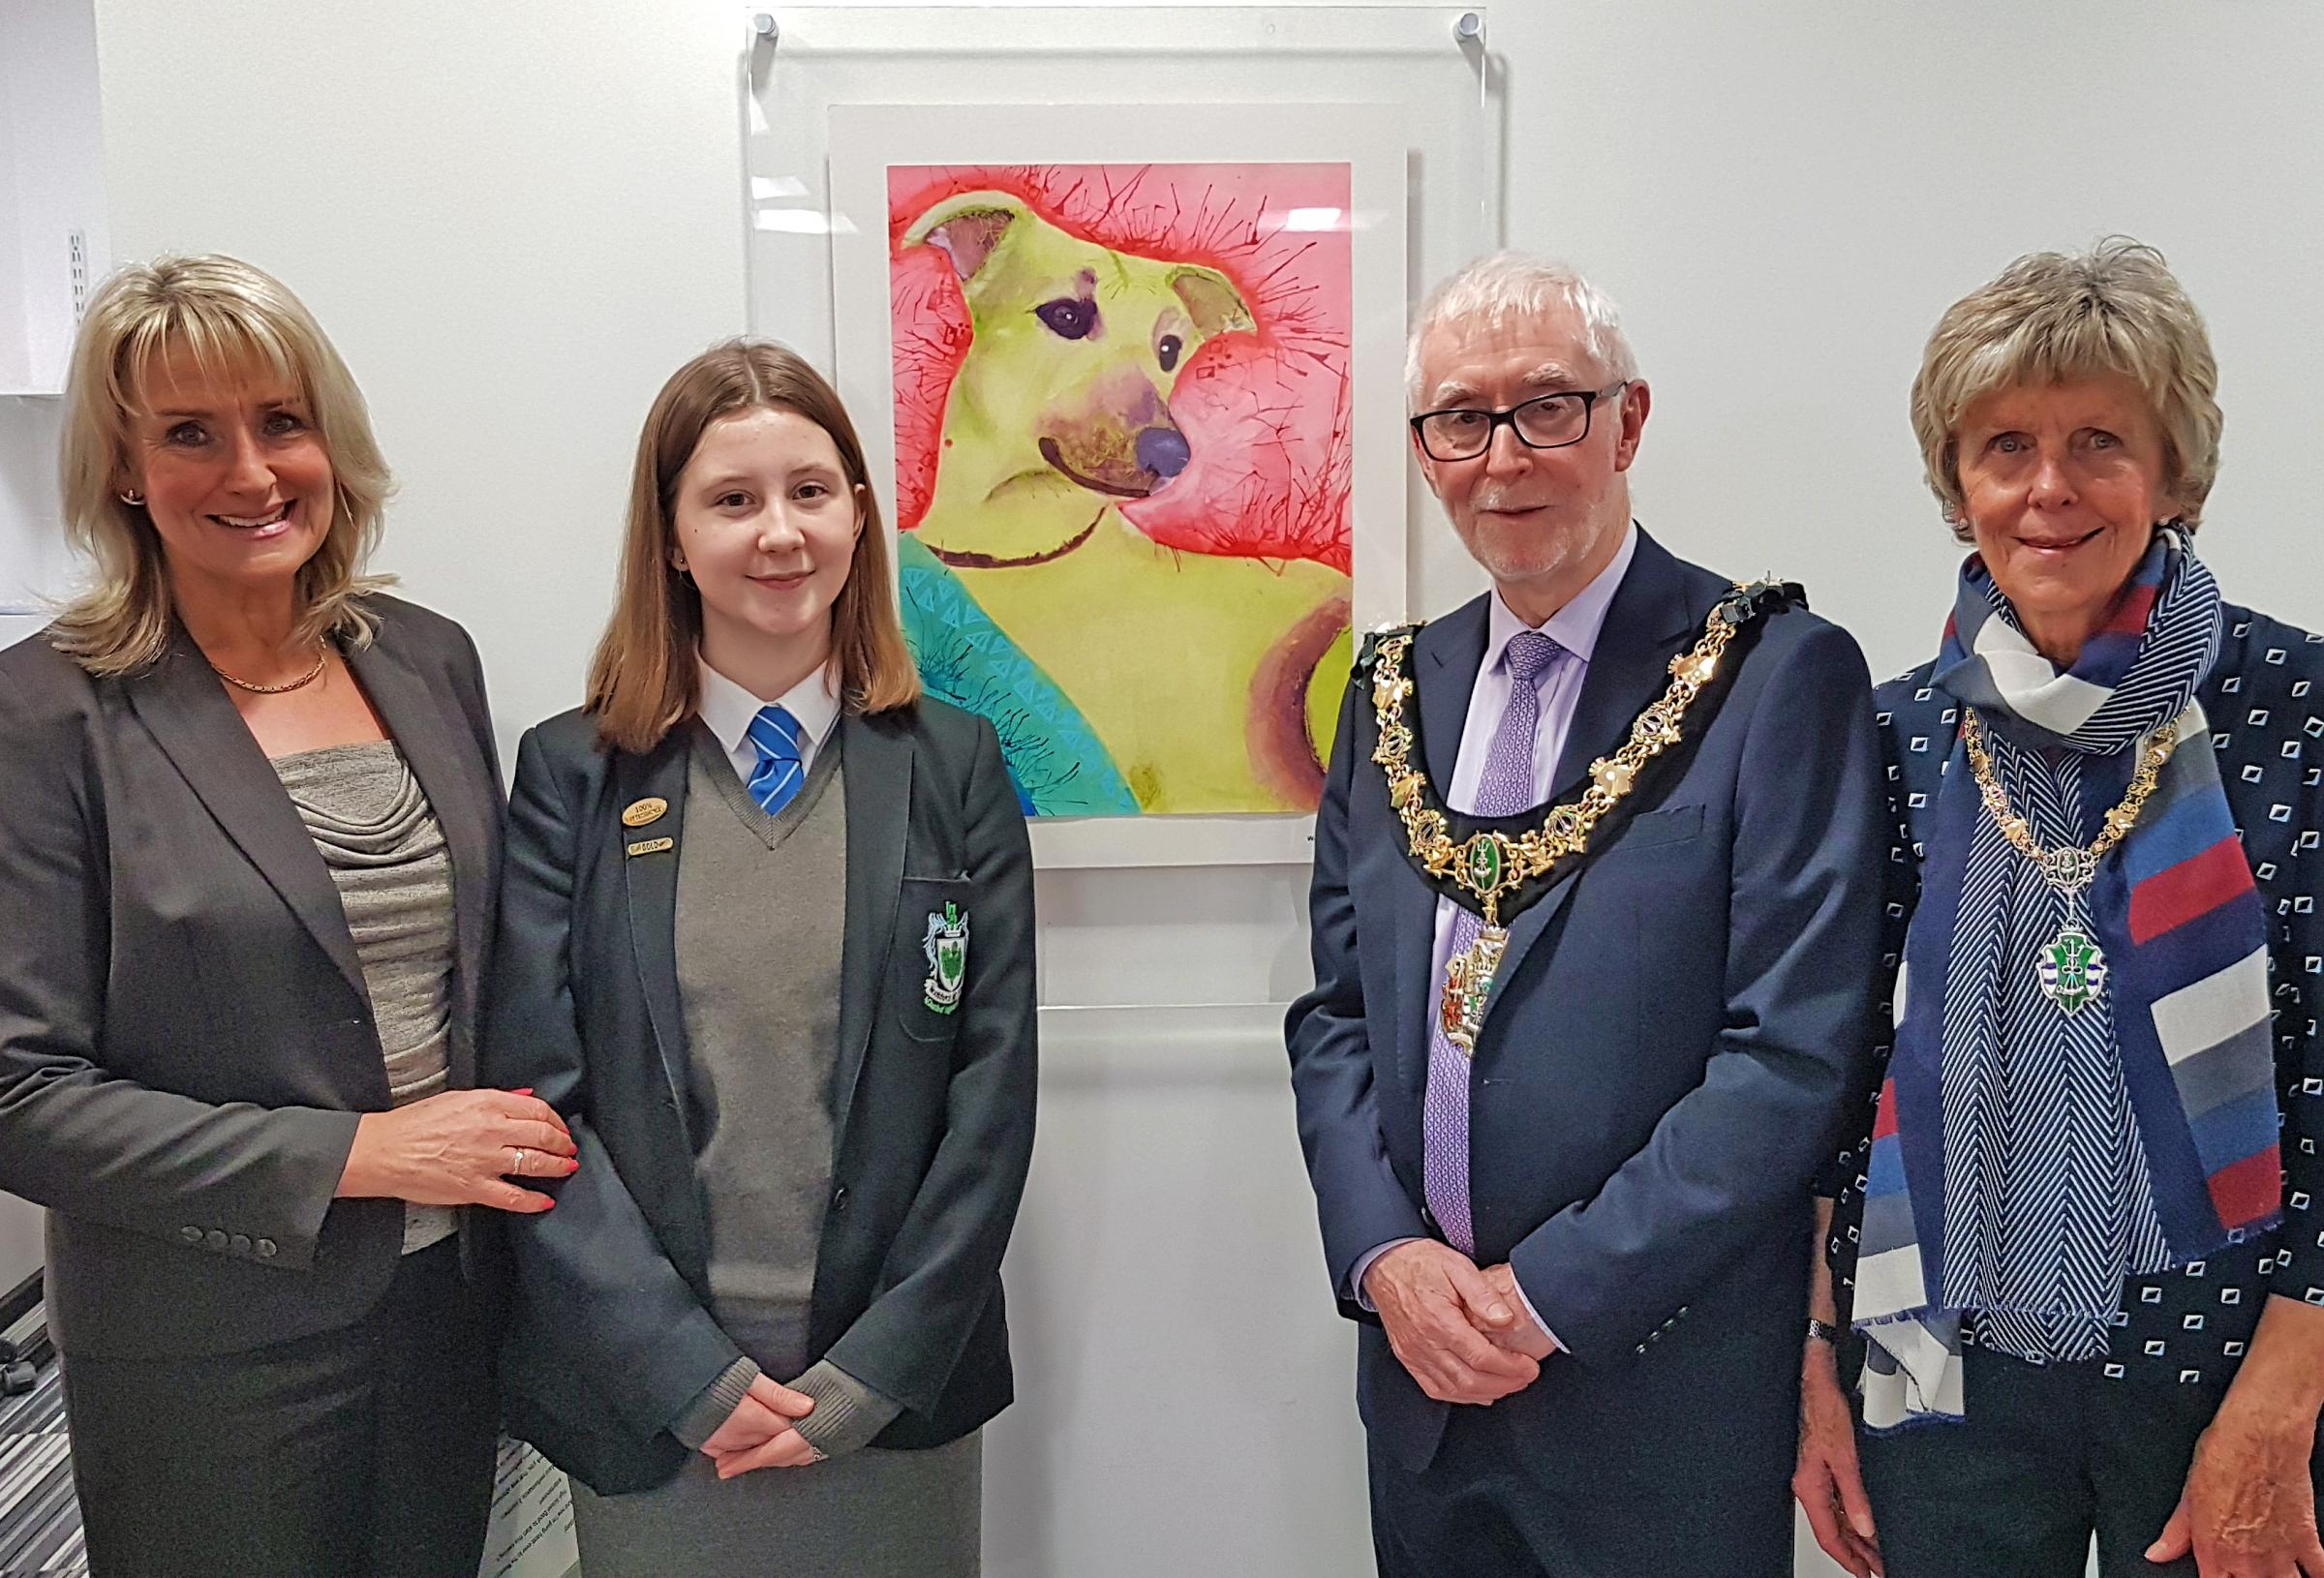 St Catherine's Health Centre welcomes local young artists